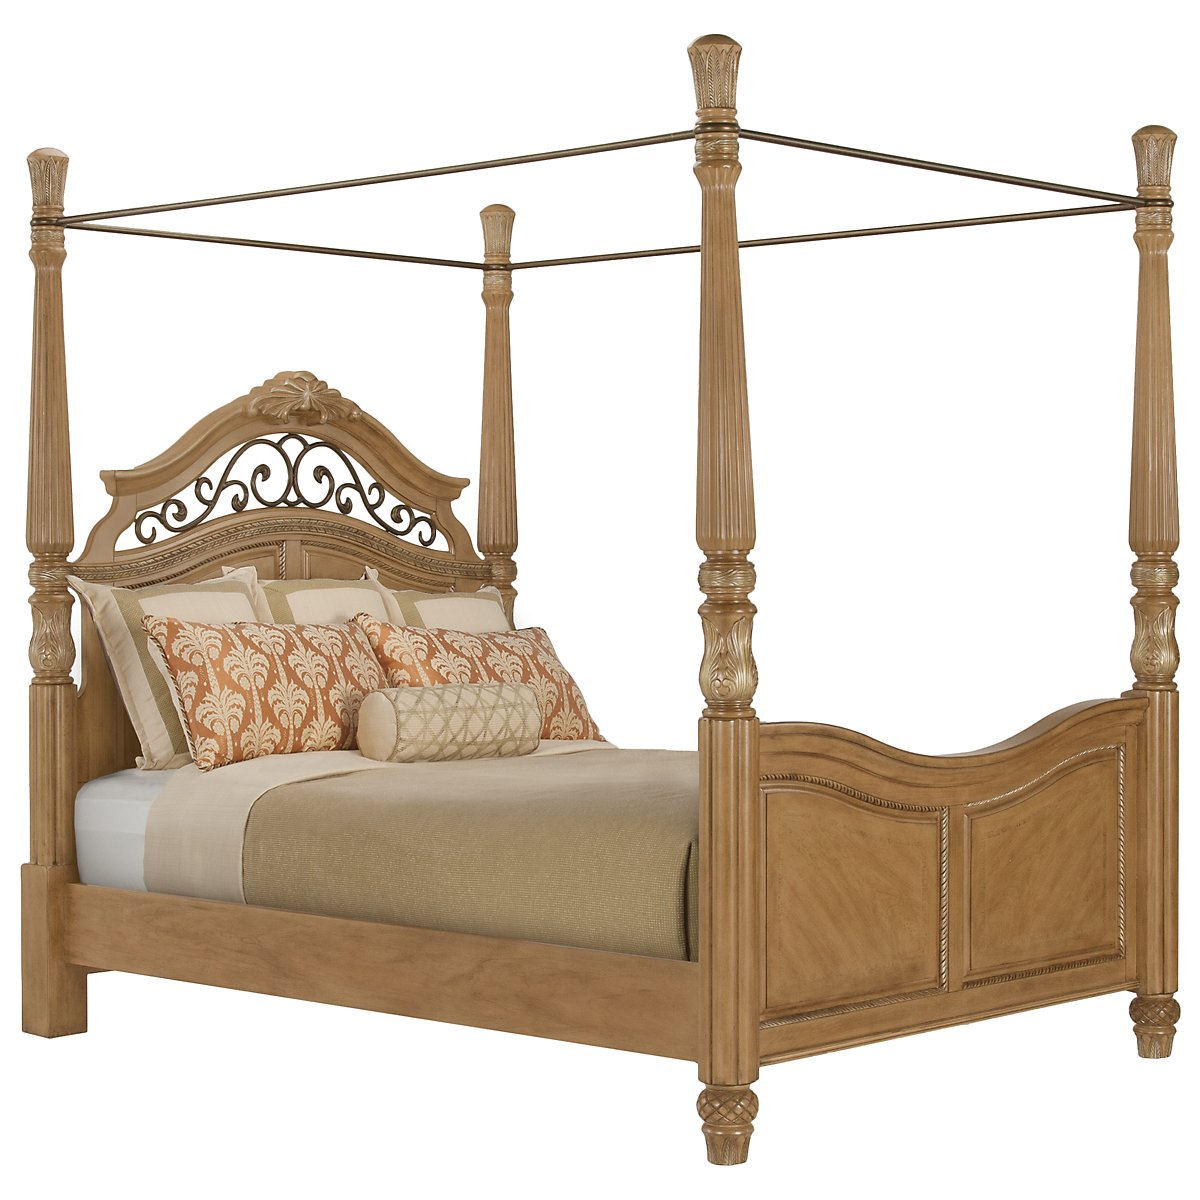 Tradewinds Light Tone Canopy Bed